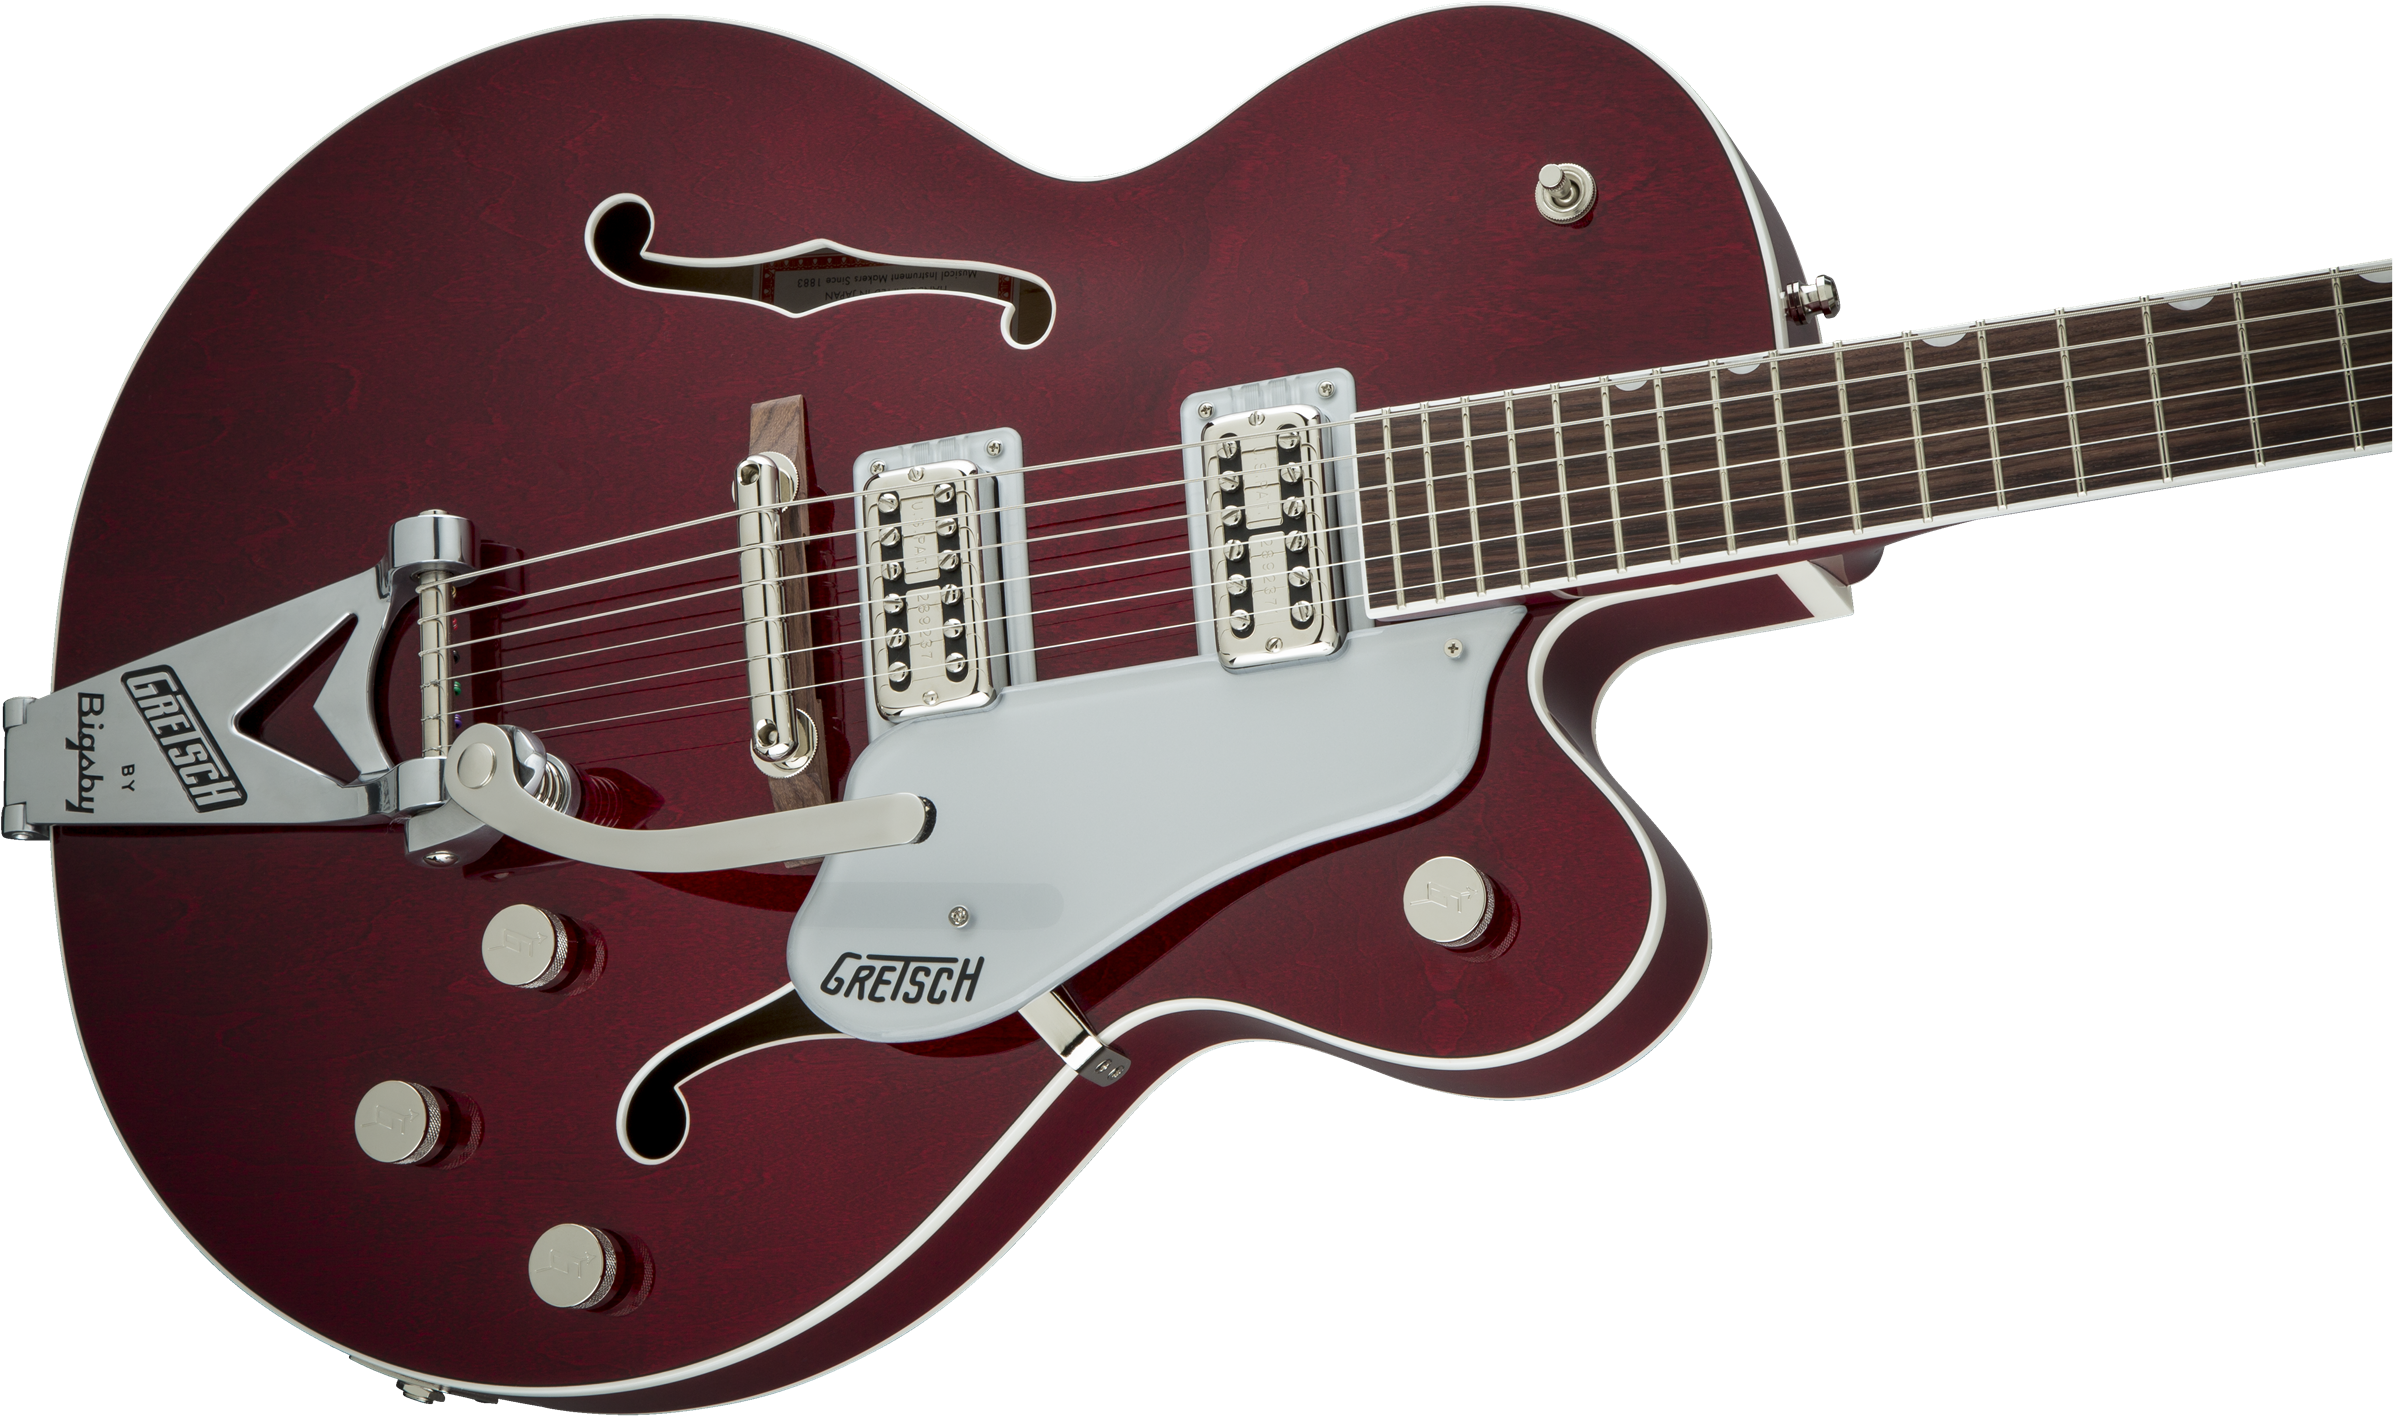 hollow body g6119t players edition tennessee rose with string thru bigsby filter 39 tron. Black Bedroom Furniture Sets. Home Design Ideas